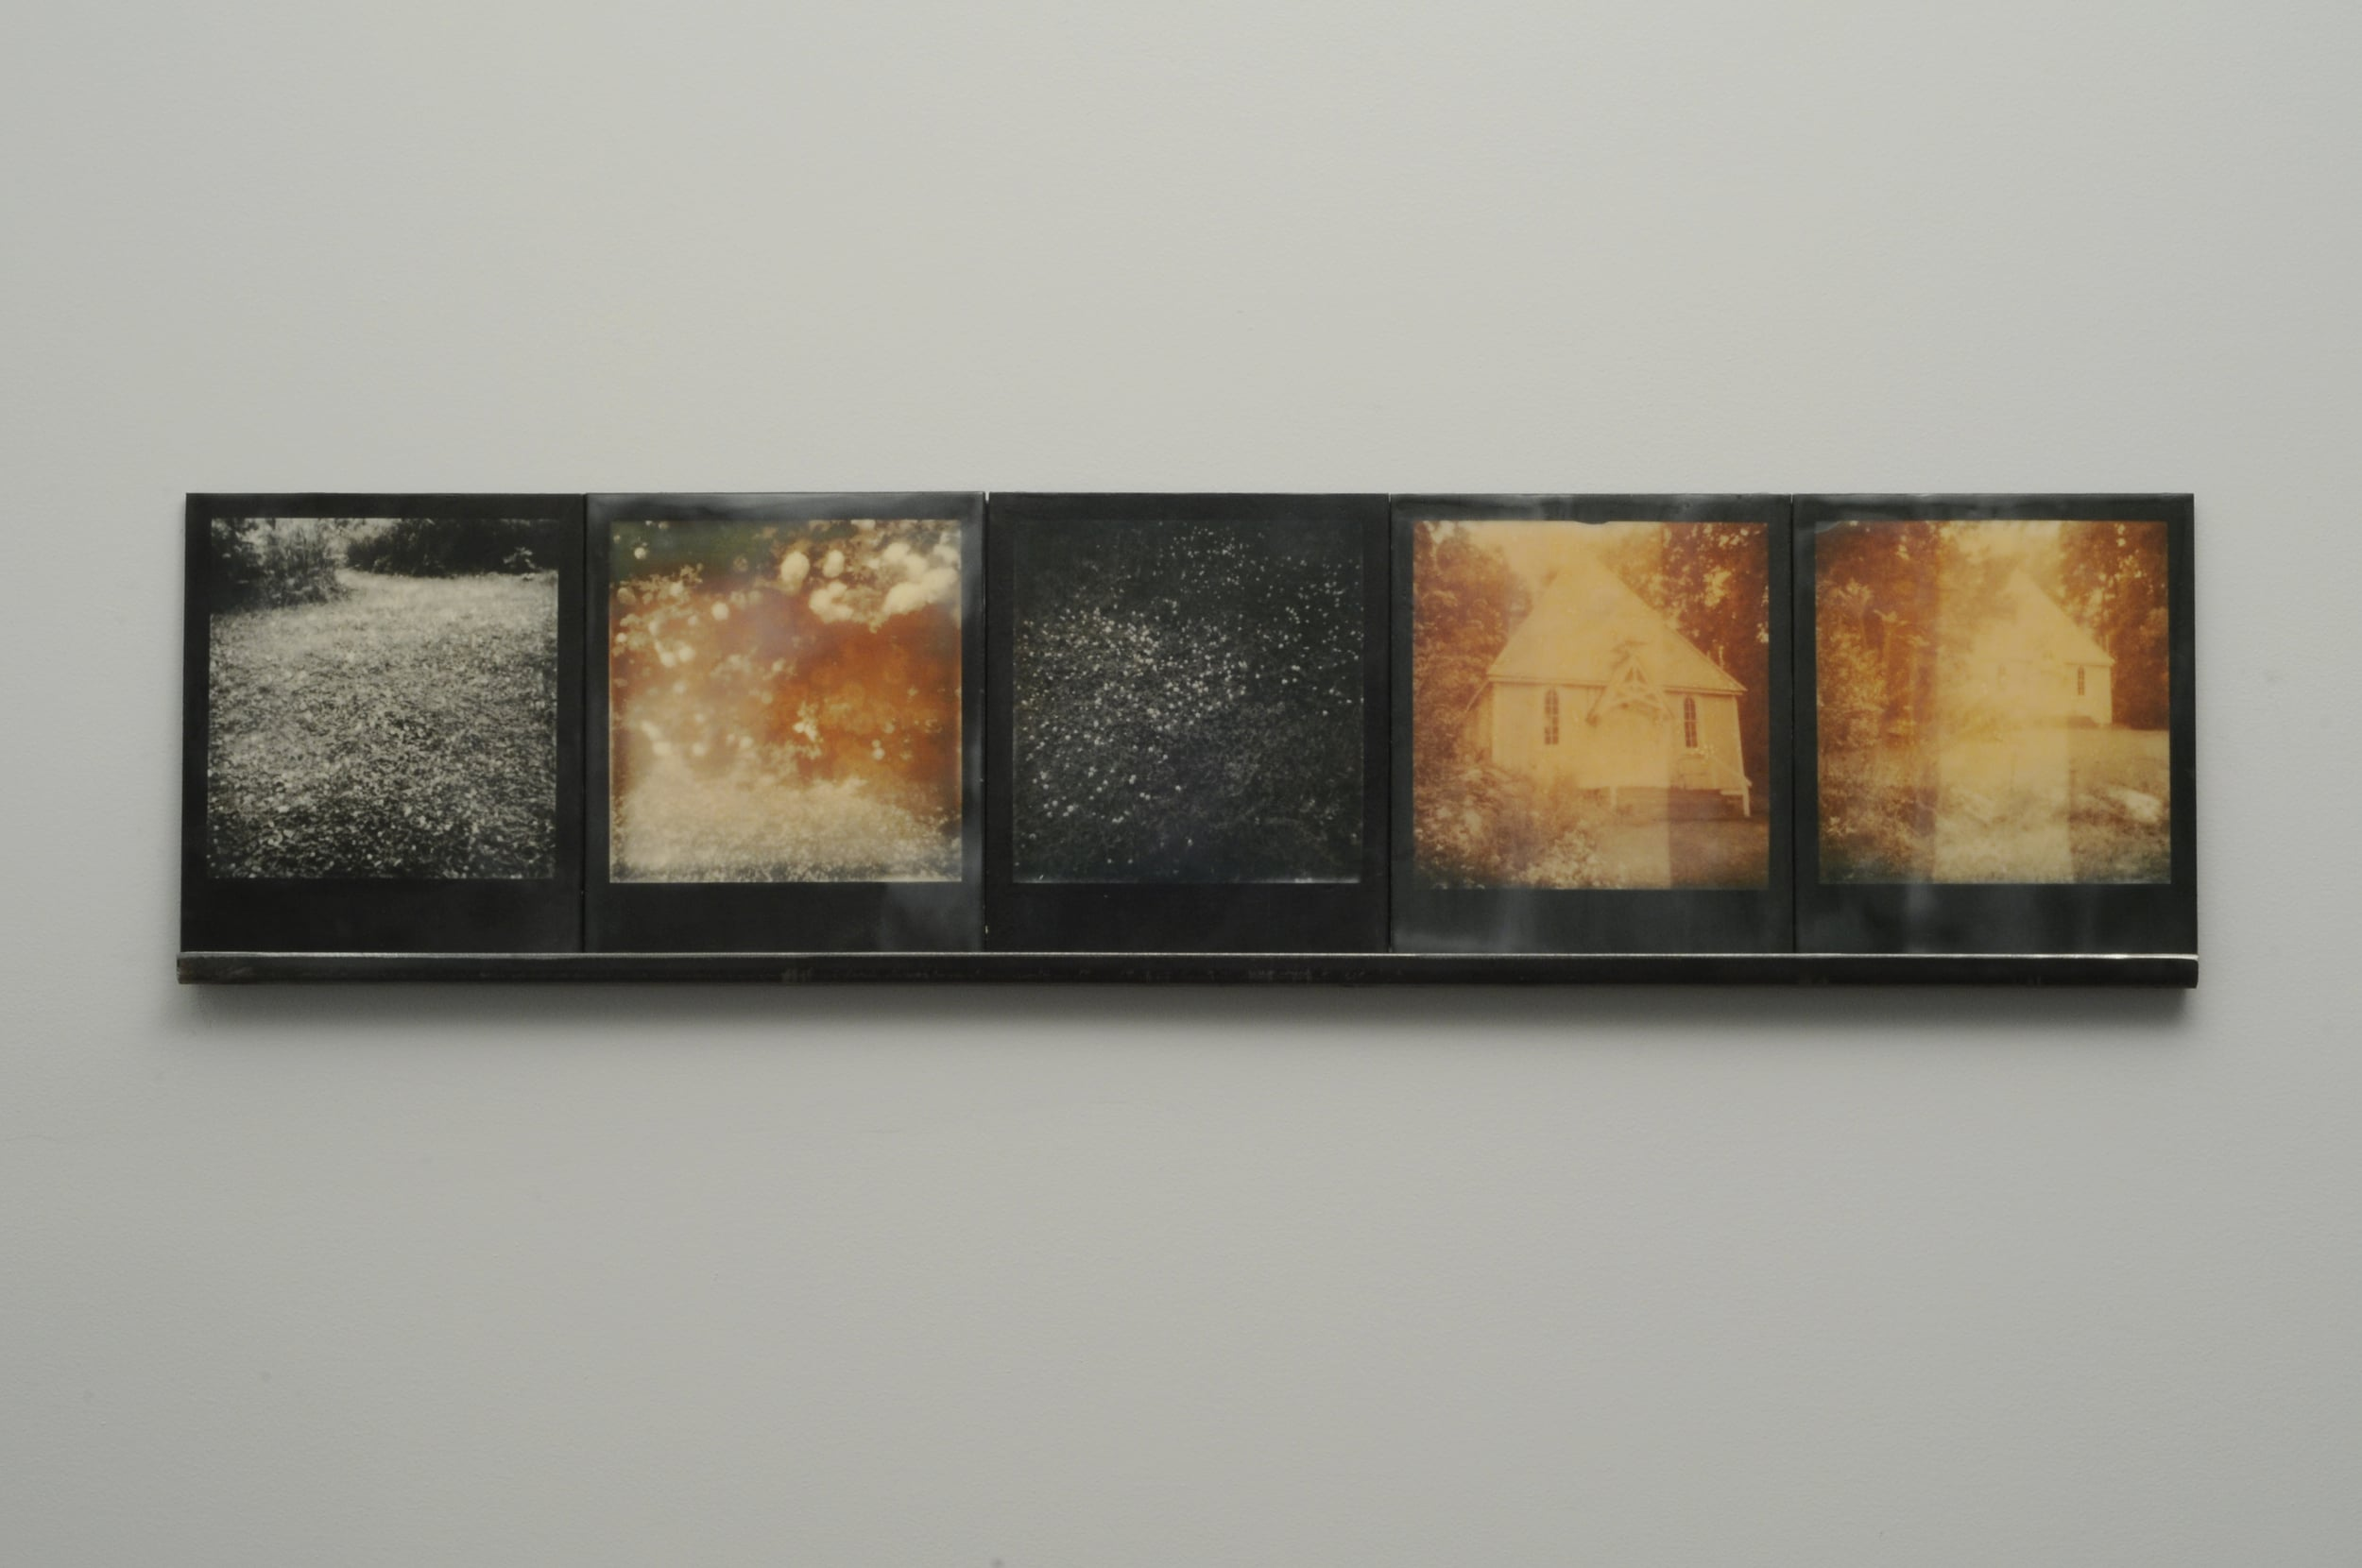 """Clove  , 2015, pigment prints on cotton and panel with encaustic medium and steel shelf, 8.5"""" x 35.25"""" variable edition of 2 and 1 artist proof"""